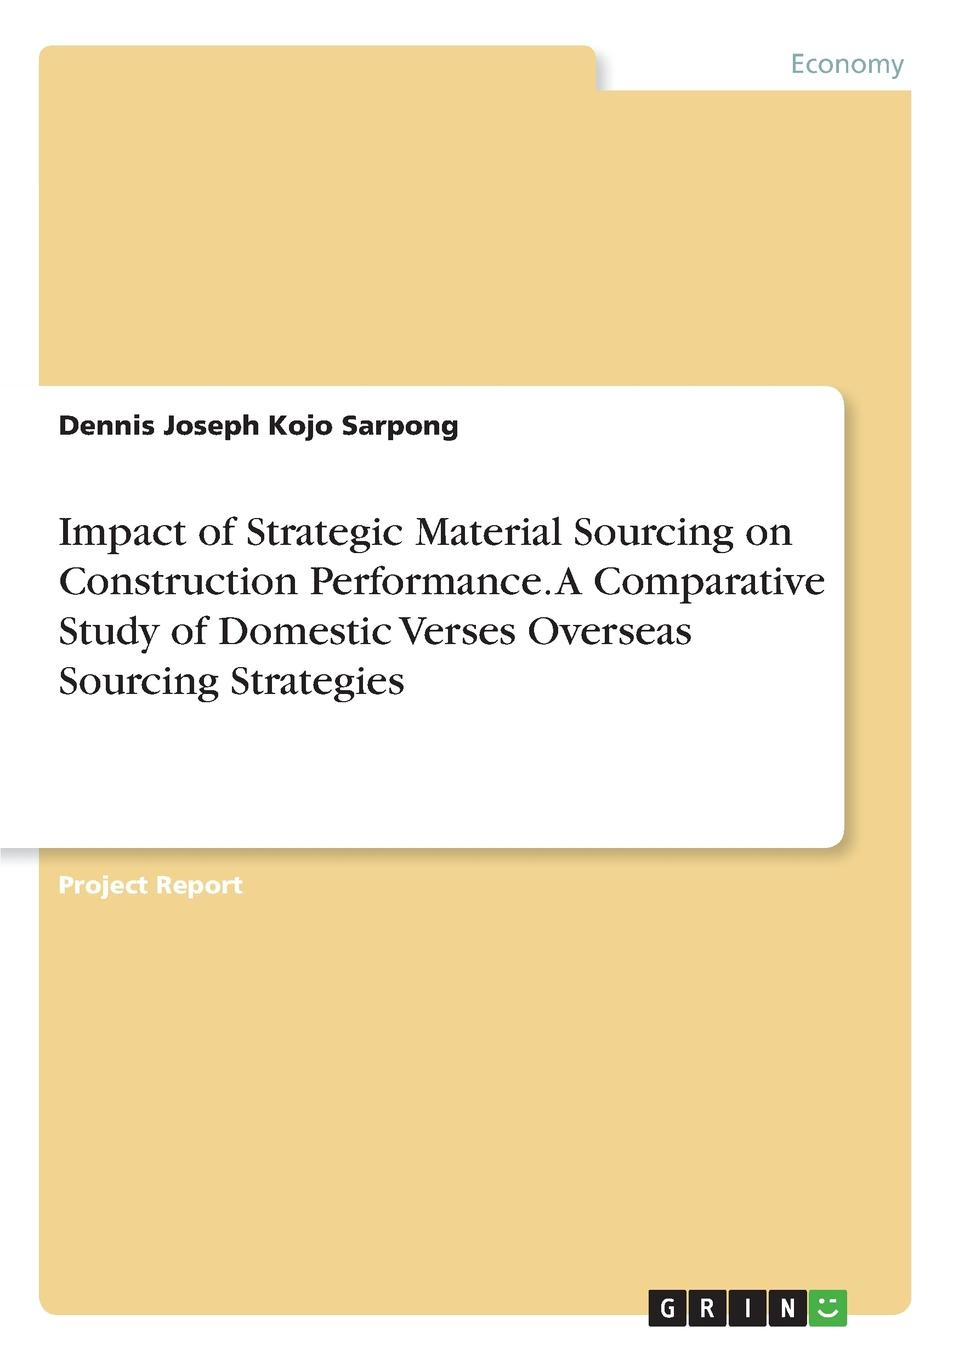 Dennis Joseph Kojo Sarpong Impact of Strategic Material Sourcing on Construction Performance. A Comparative Study of Domestic Verses Overseas Sourcing Strategies hauke jensen global sourcing procurement in china